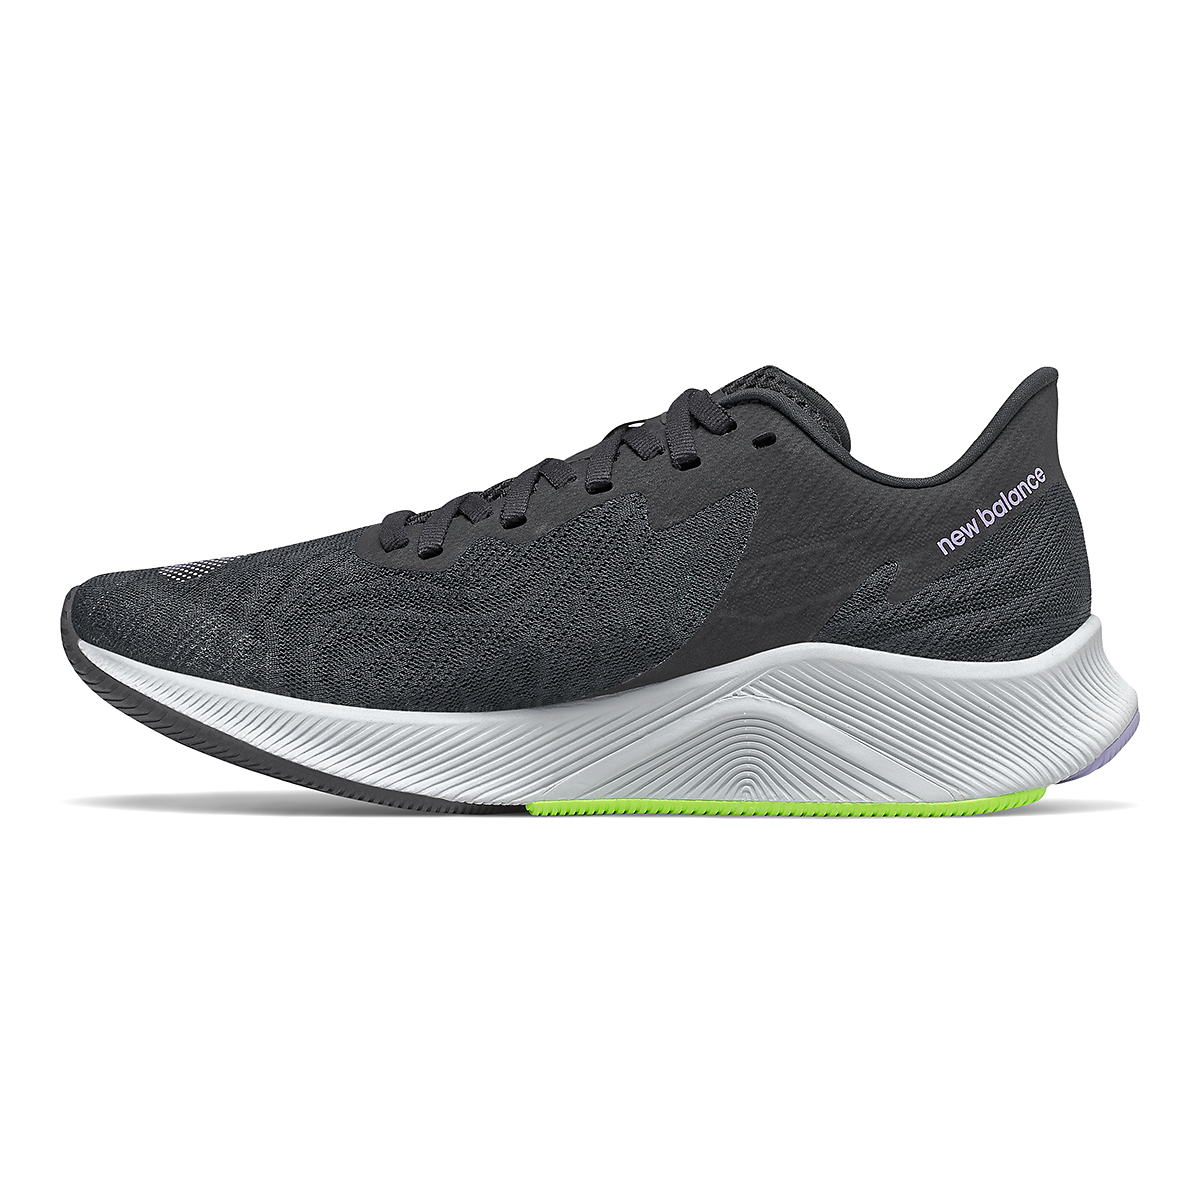 Women's New Balance Fuelcell Prism Running Shoe, , large, image 2